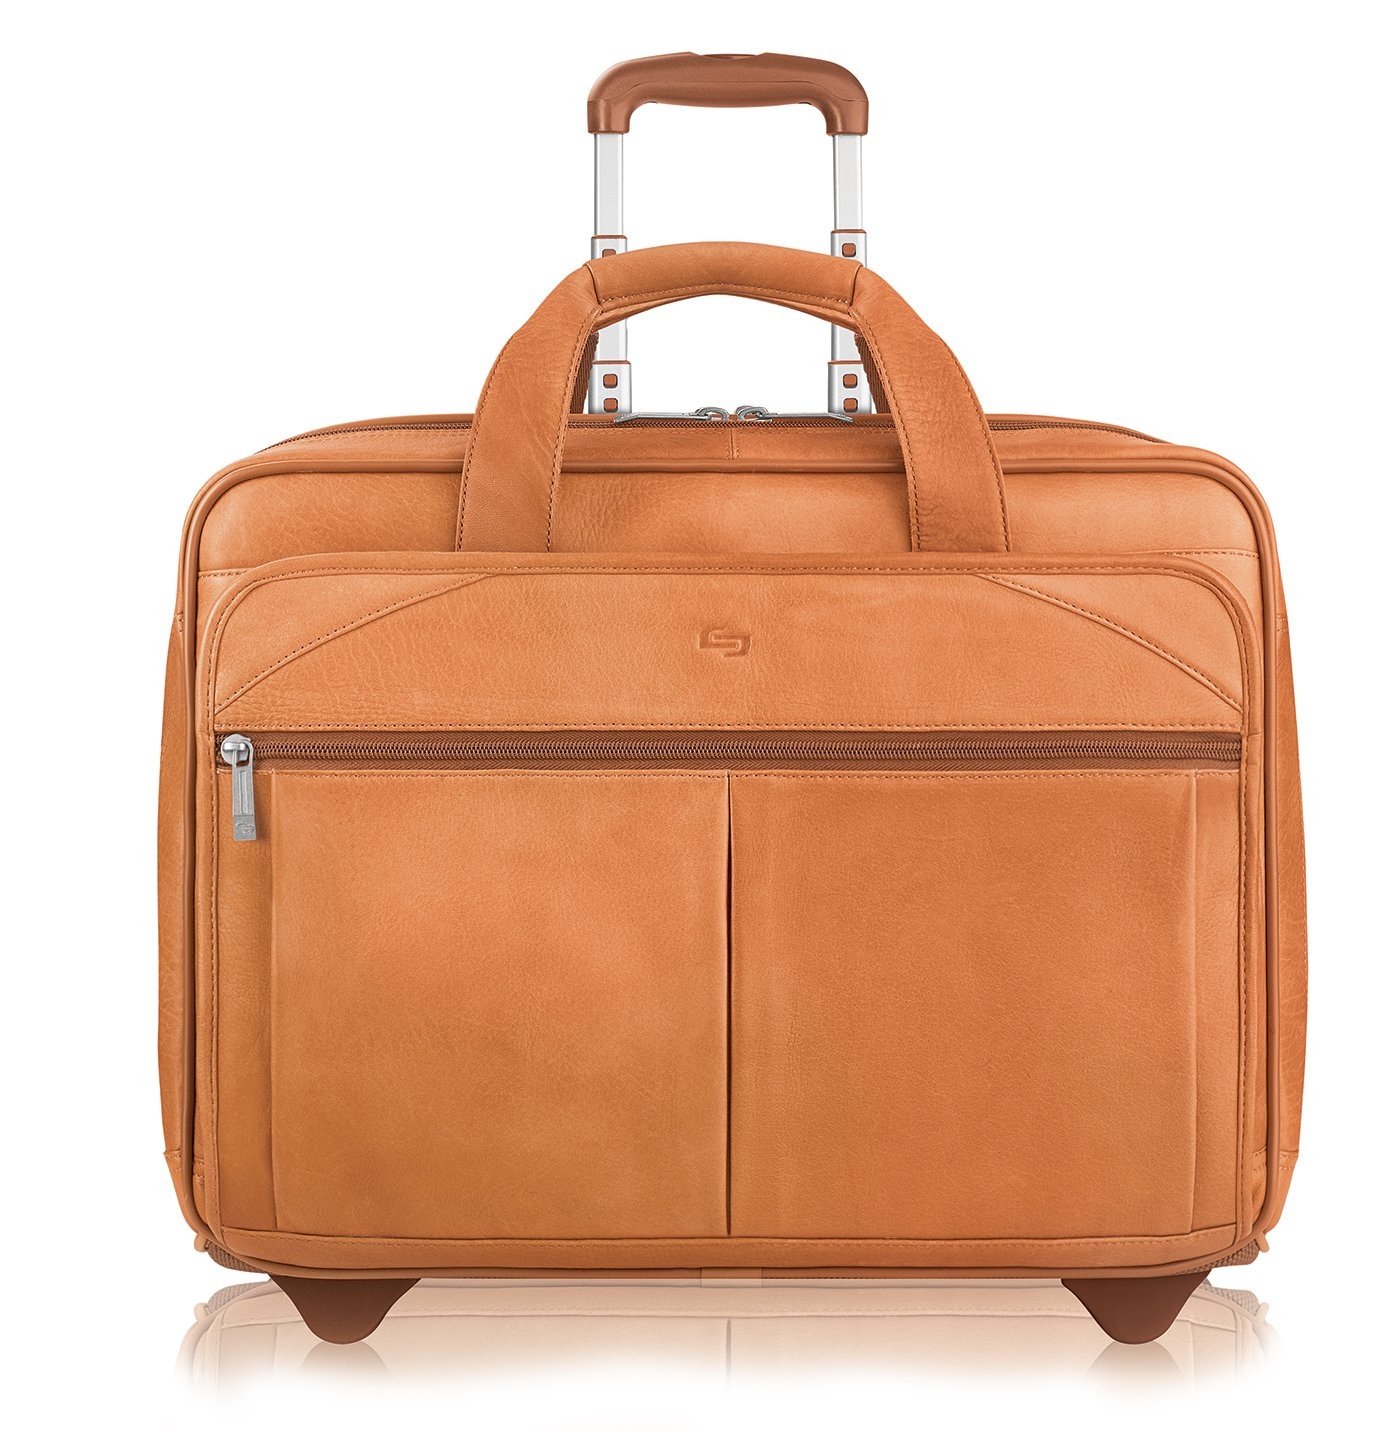 Solo Walker 15.6 Inch Rolling Laptop Case, Tan D529-1U2